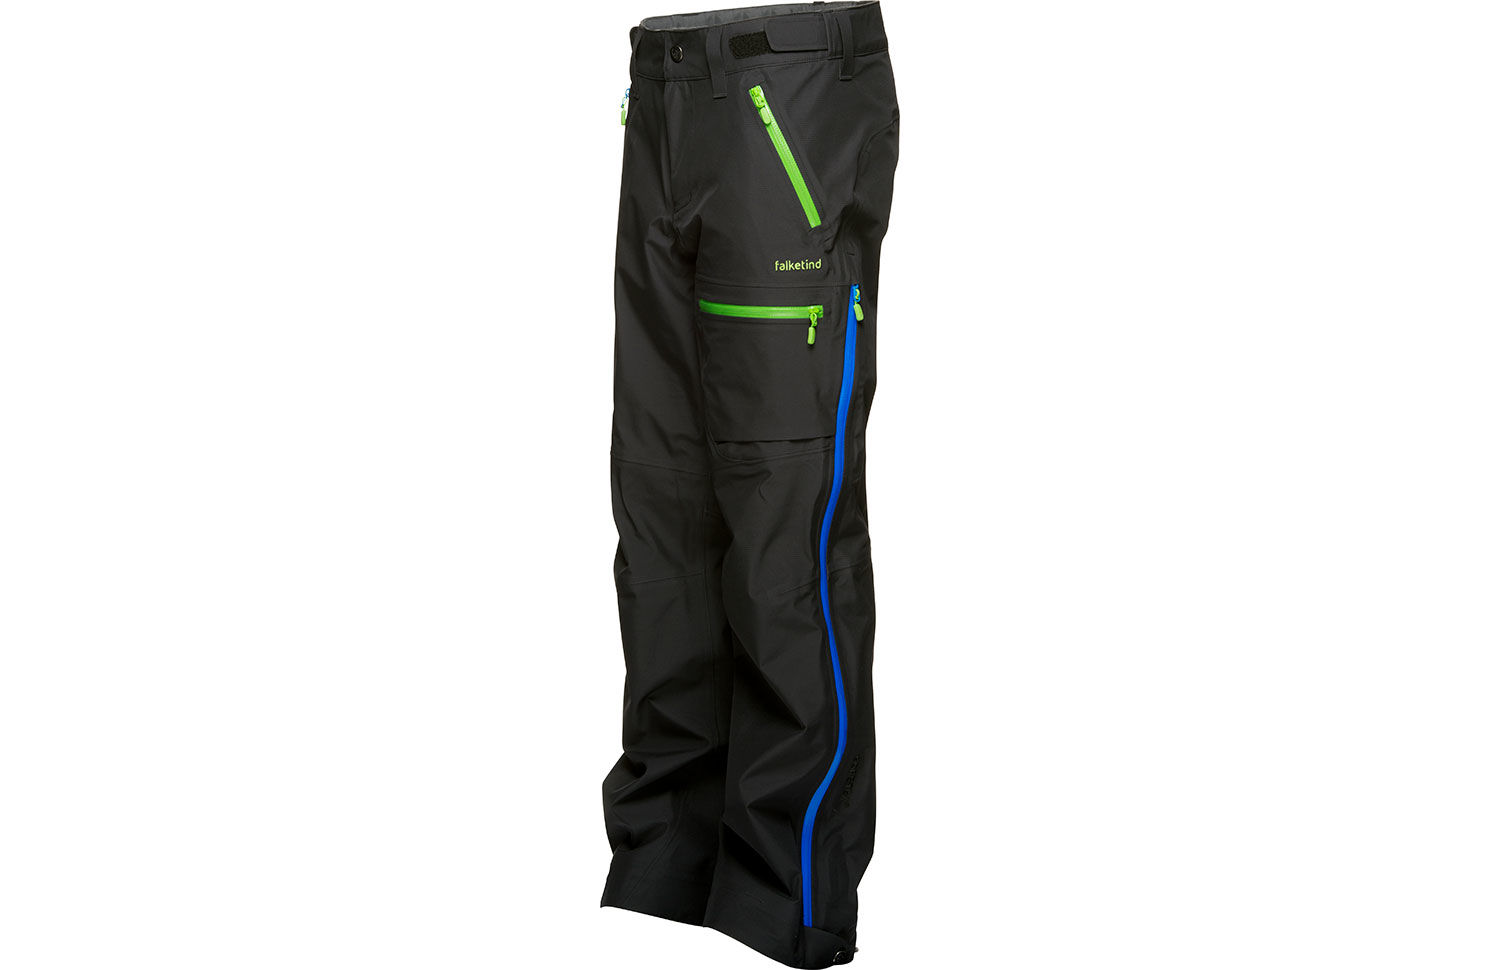 Norrona waterproof ski pants for kids - Falketind